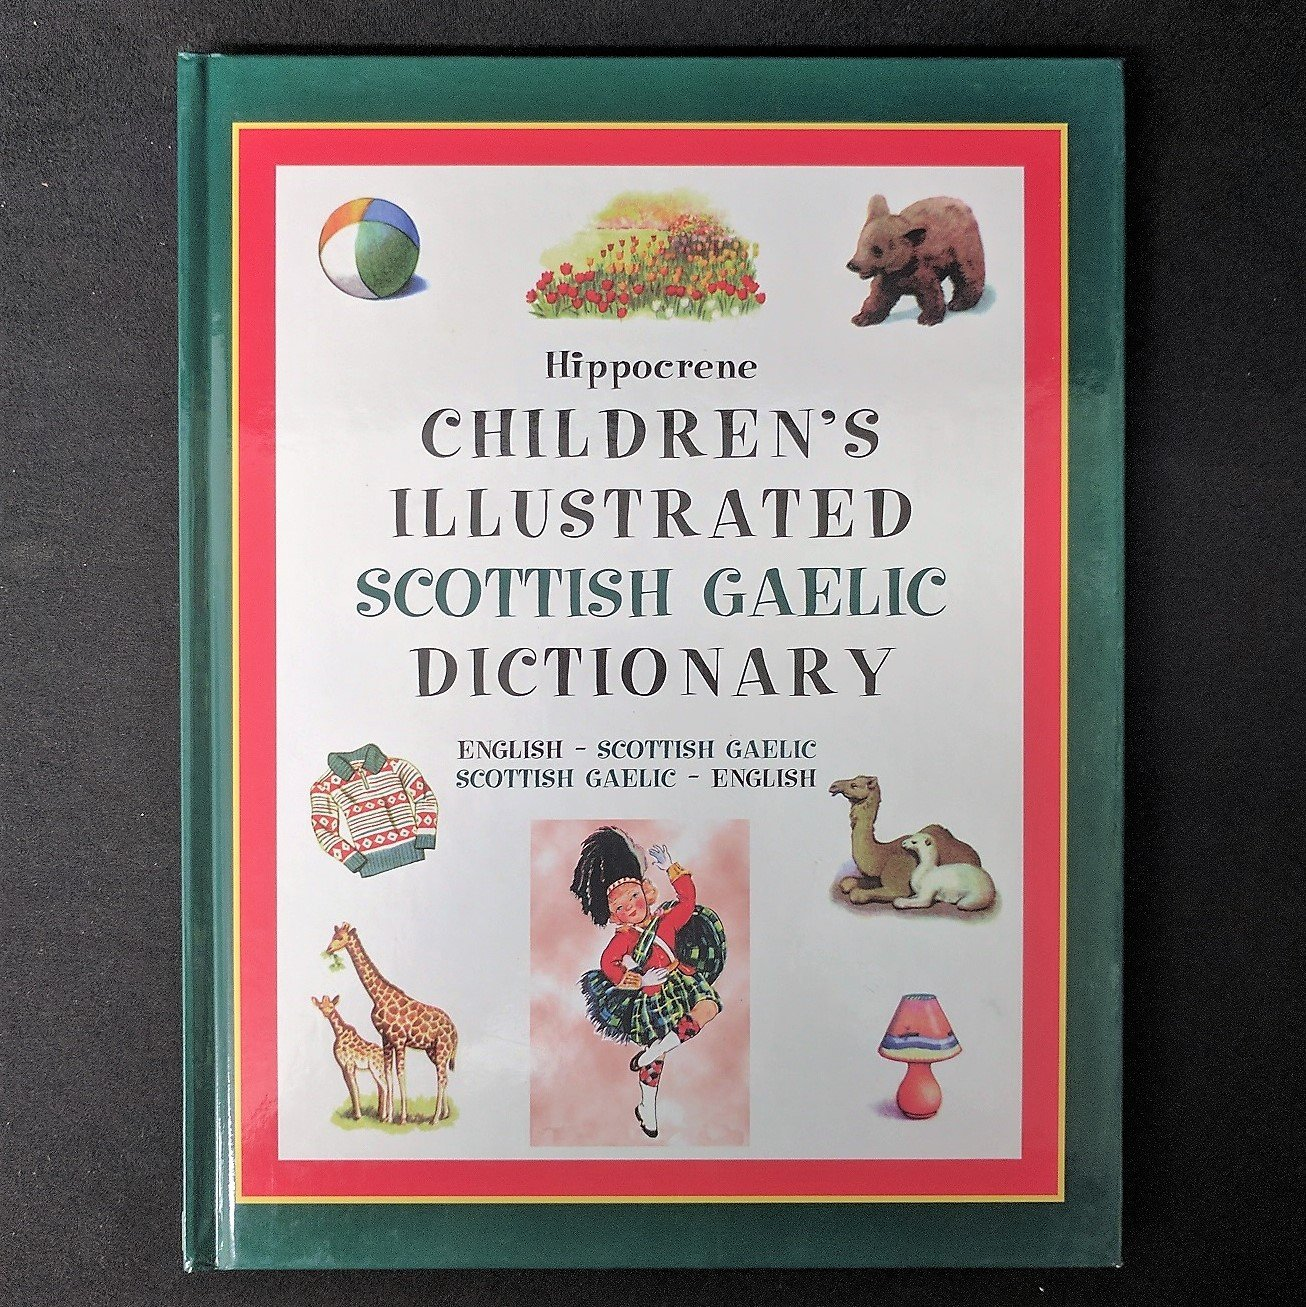 Hippocrene Children's Illustrated Scottish Gaelic Dictionary: English - Scottish Gaelic/Scottish Gaelic - English